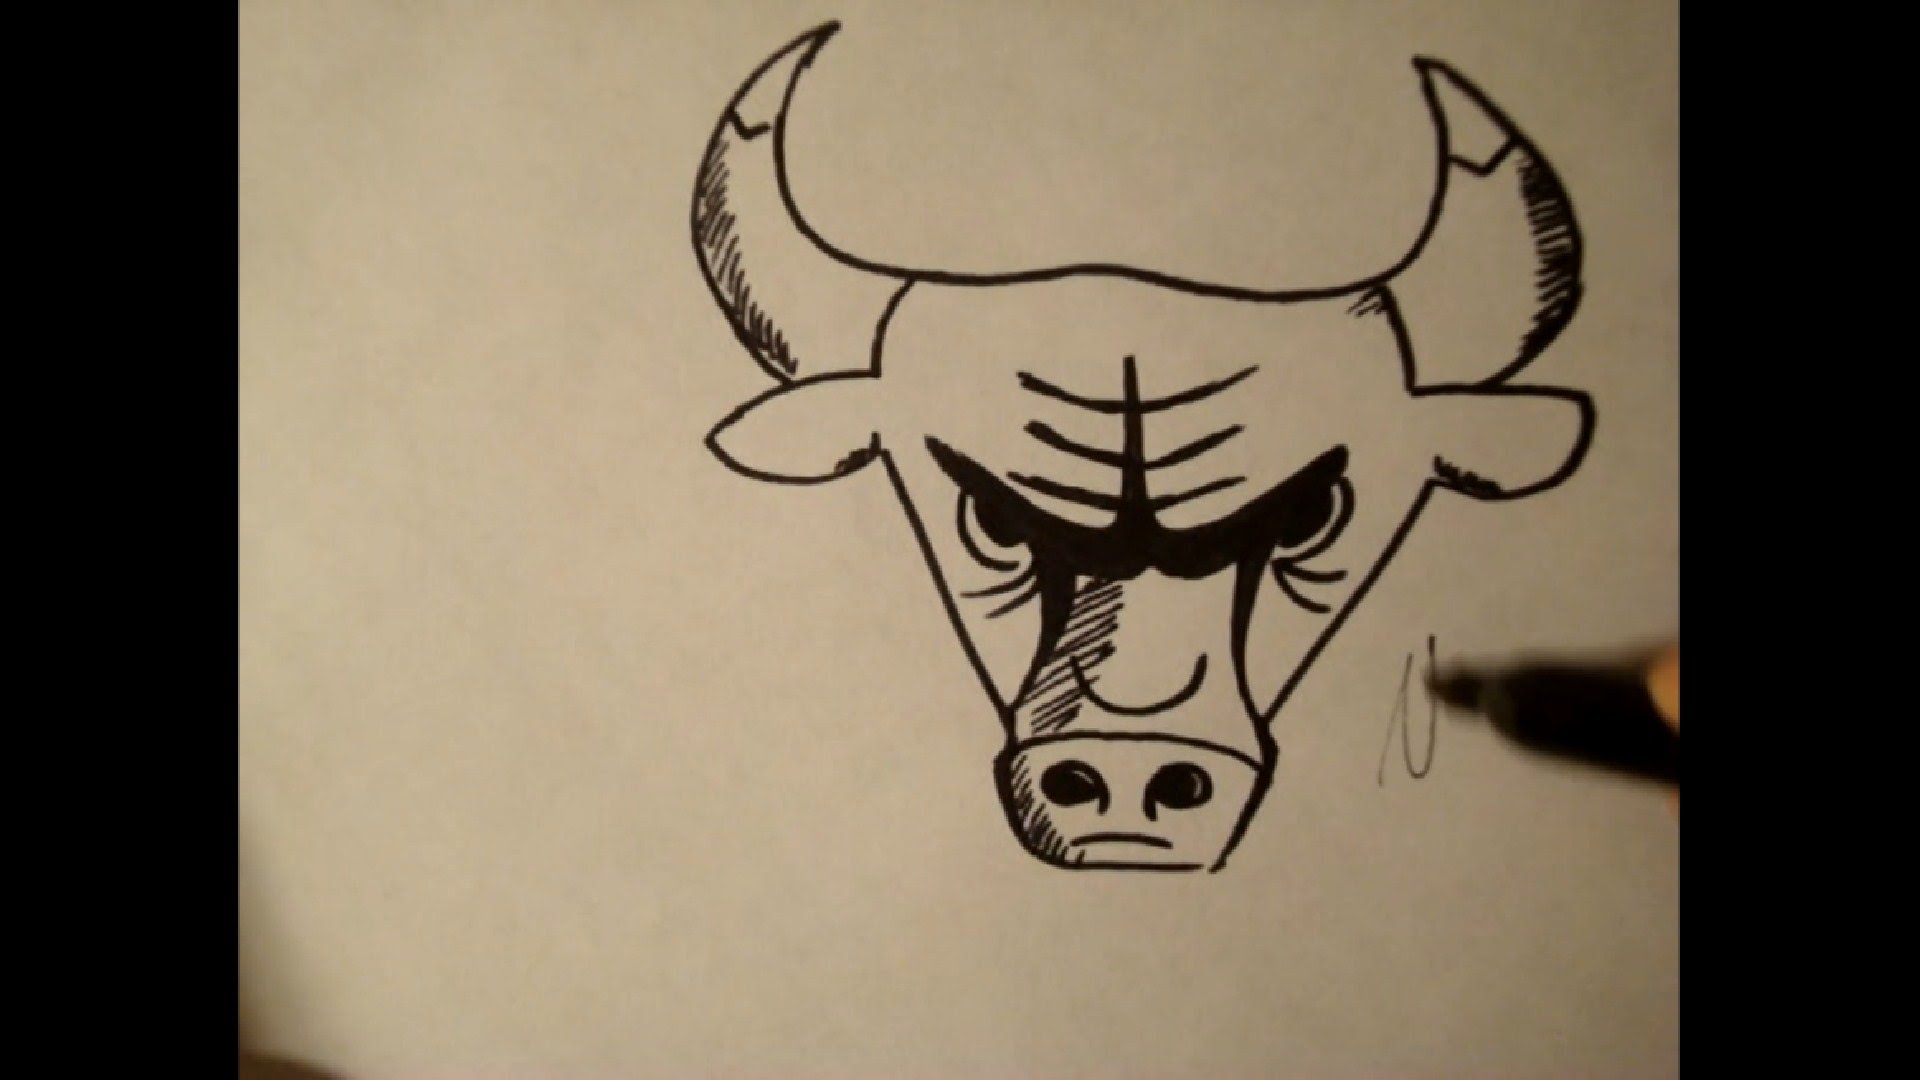 1920x1080 How To Draw Chicago Bull Logocowstep By Step